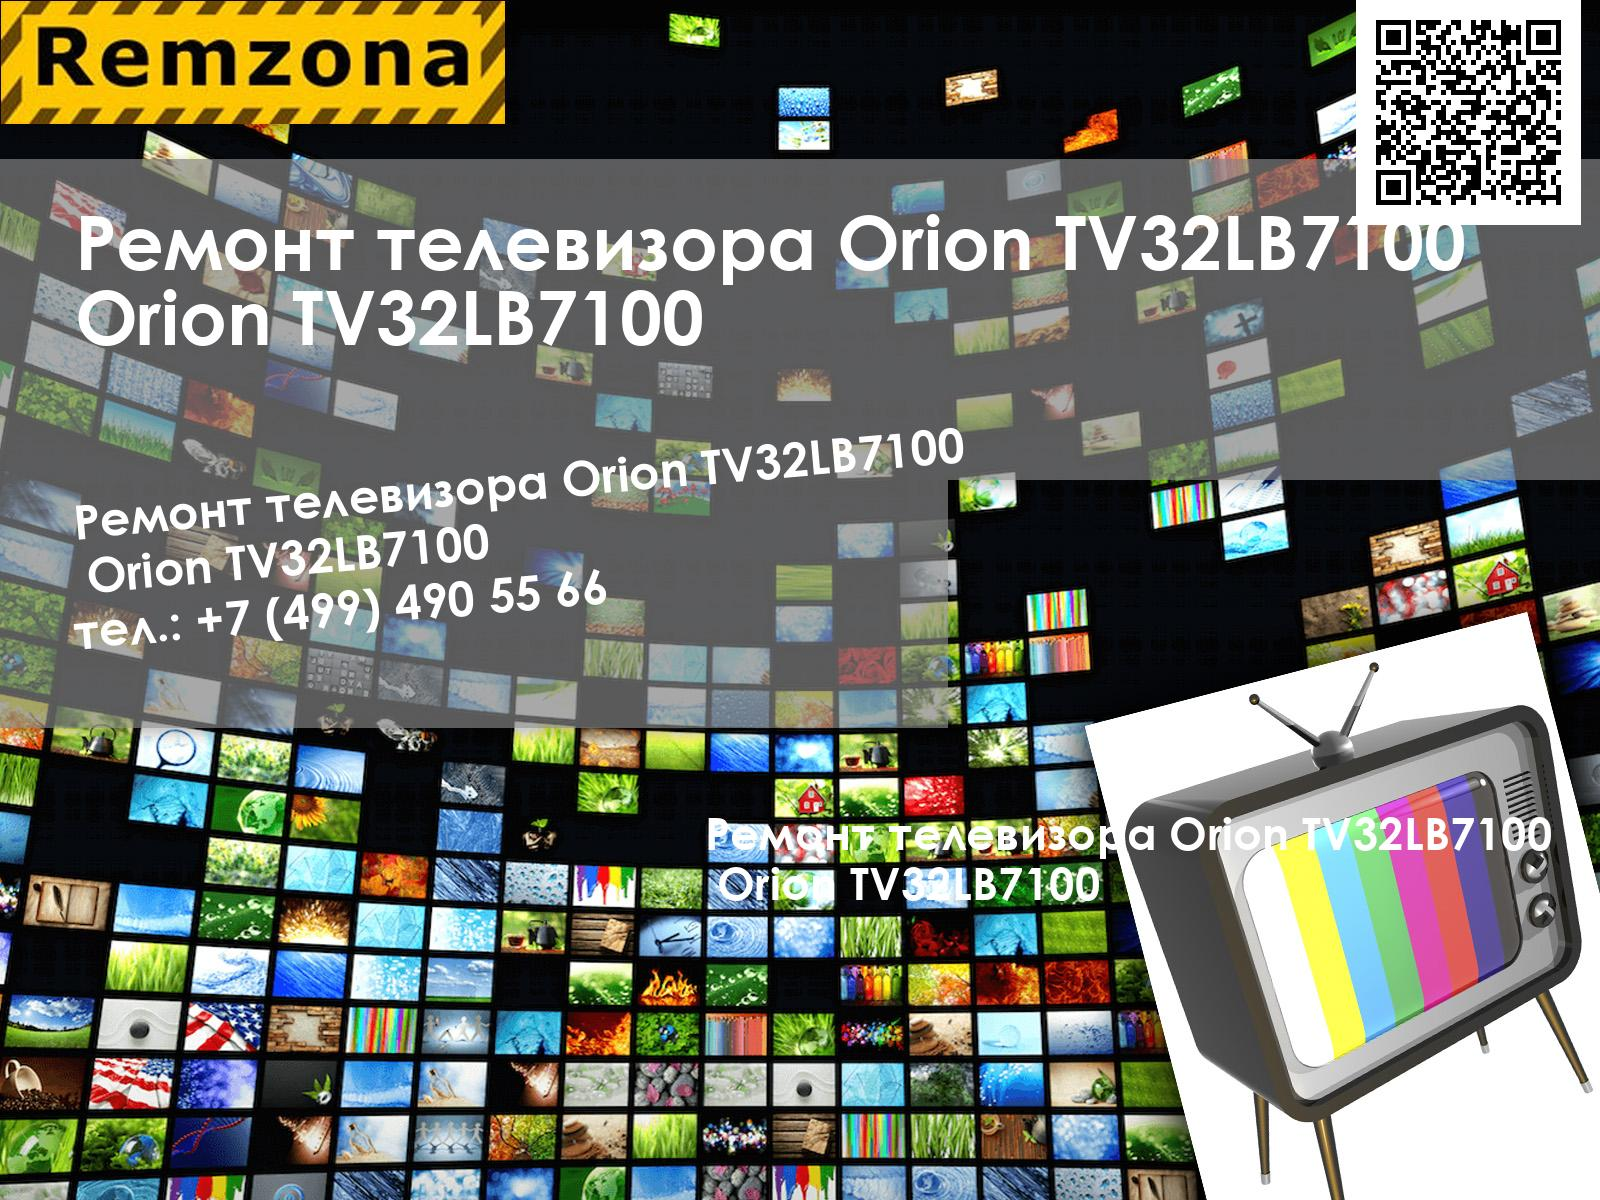 Ремонт телевизора Orion TV32LB7100